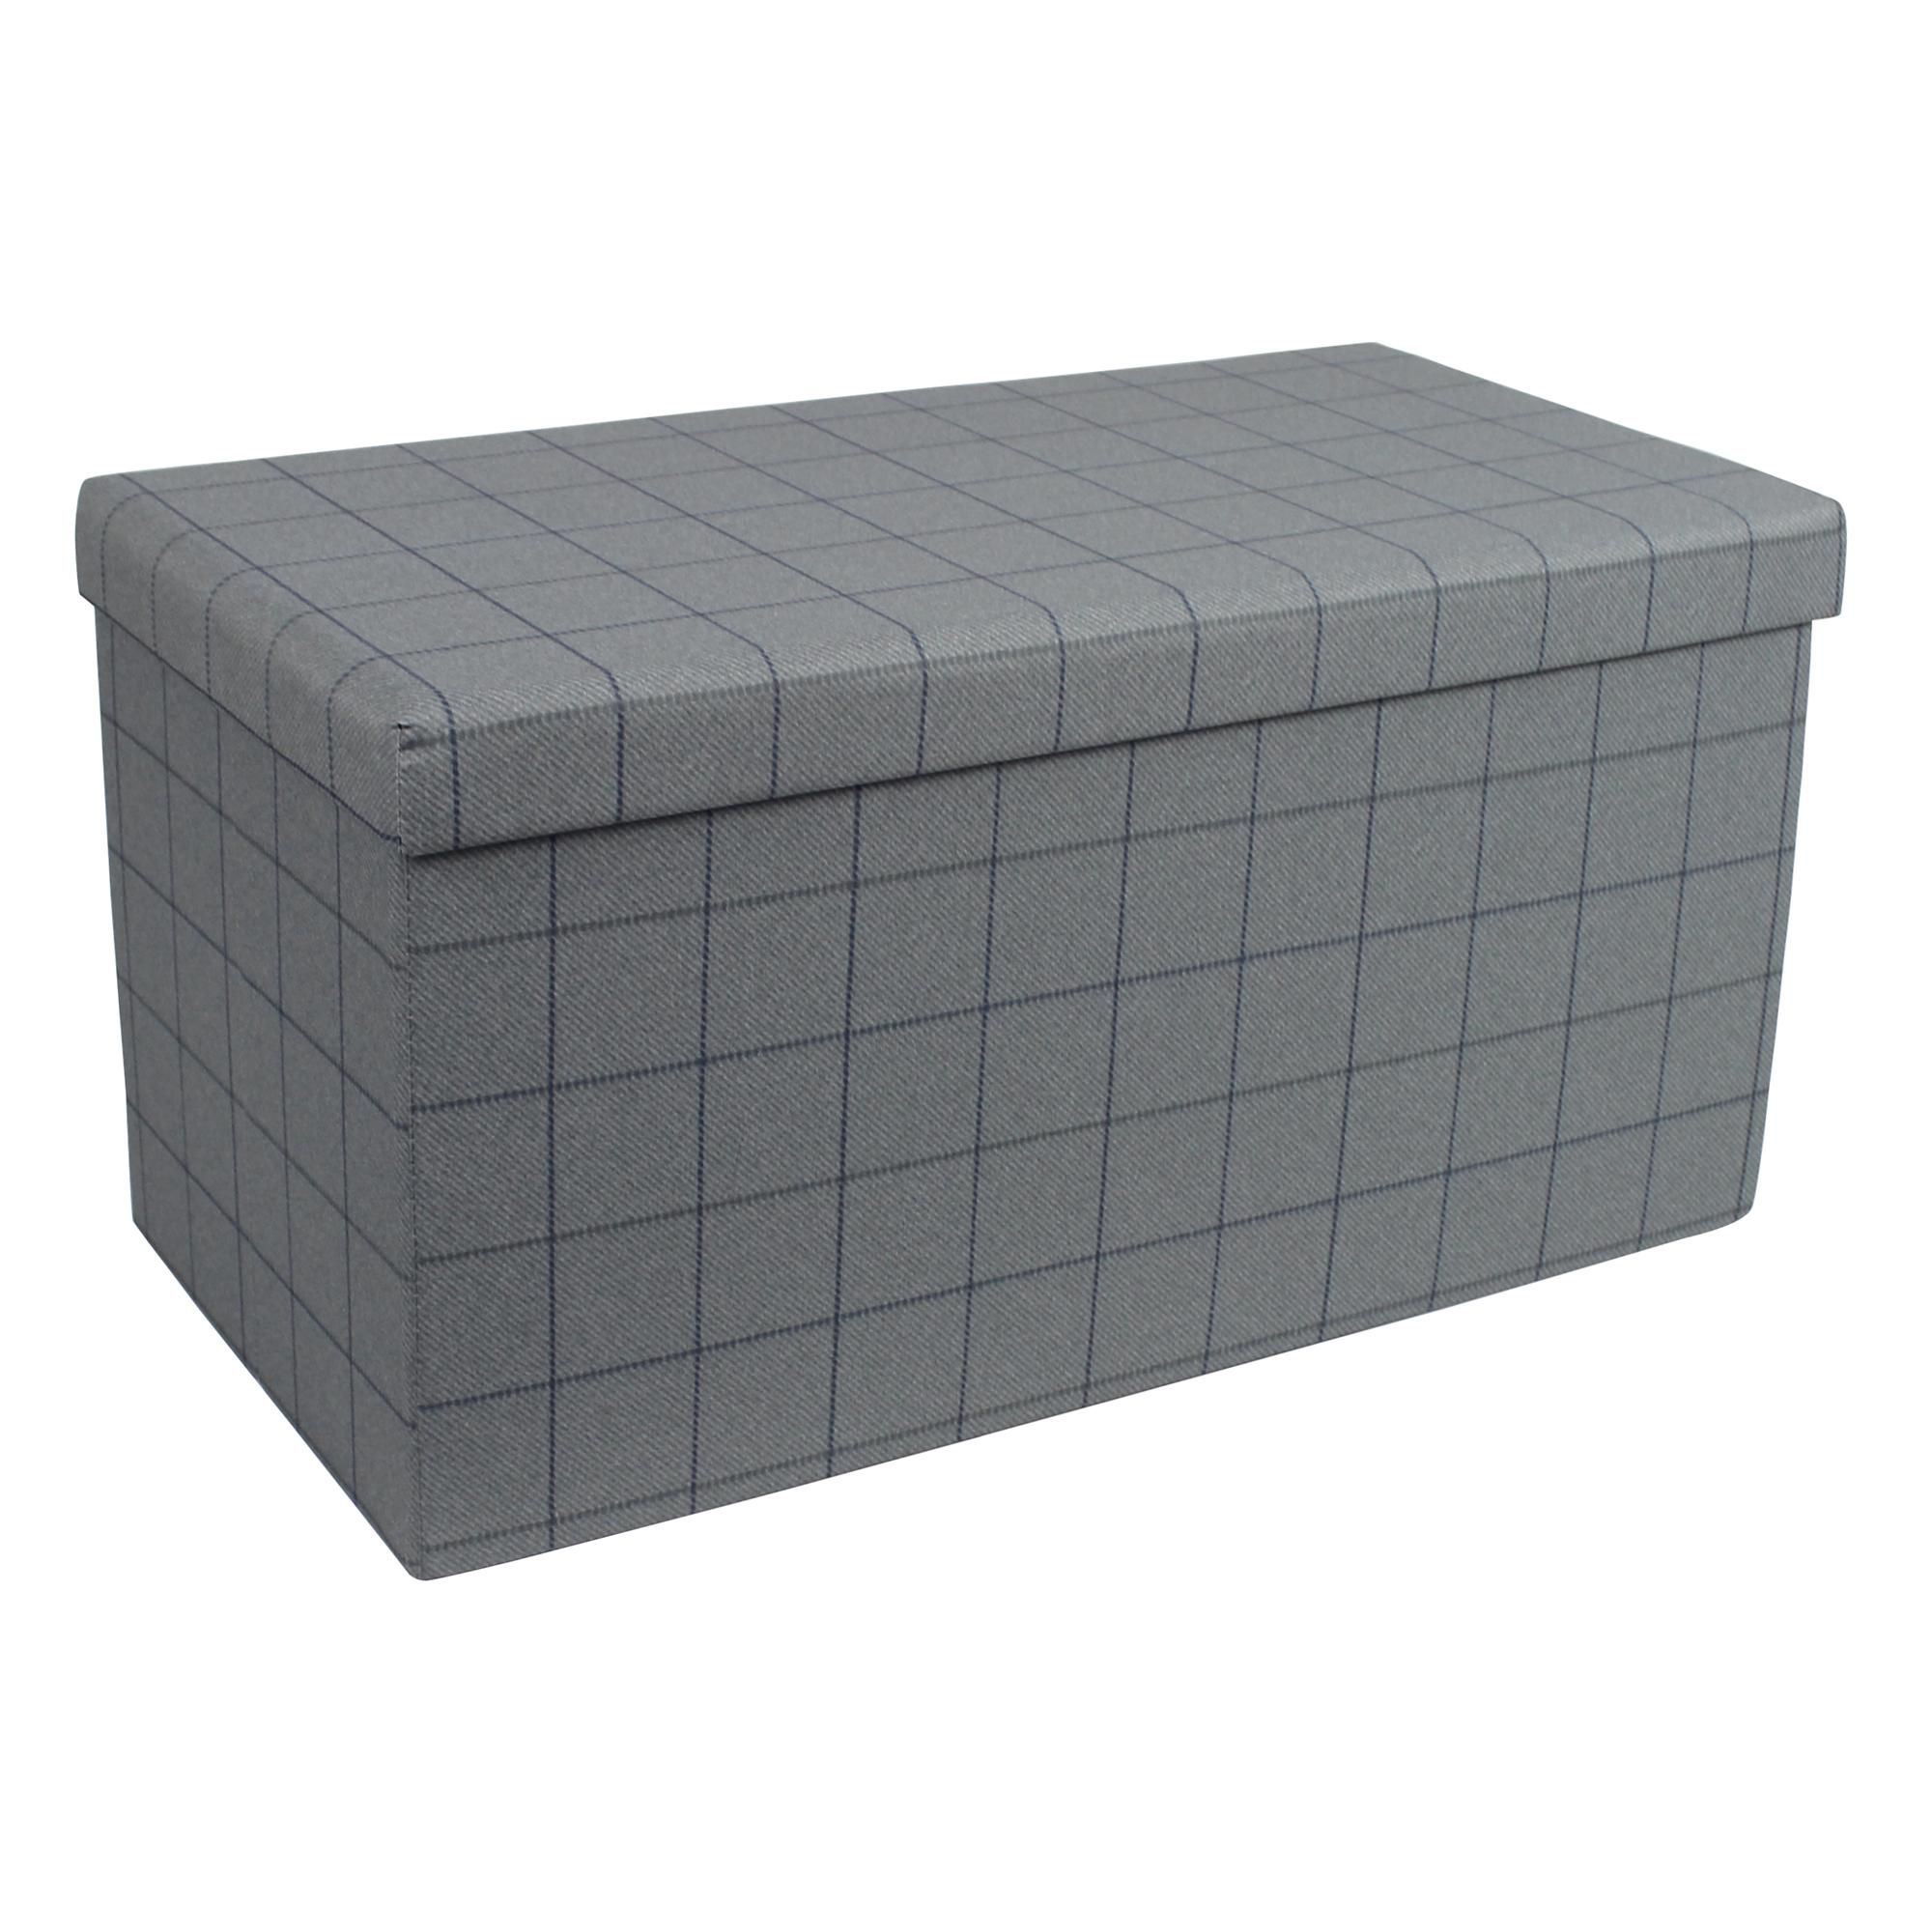 Grey Check Foldable Ottoman In 2020 Outdoor Storage Ottoman